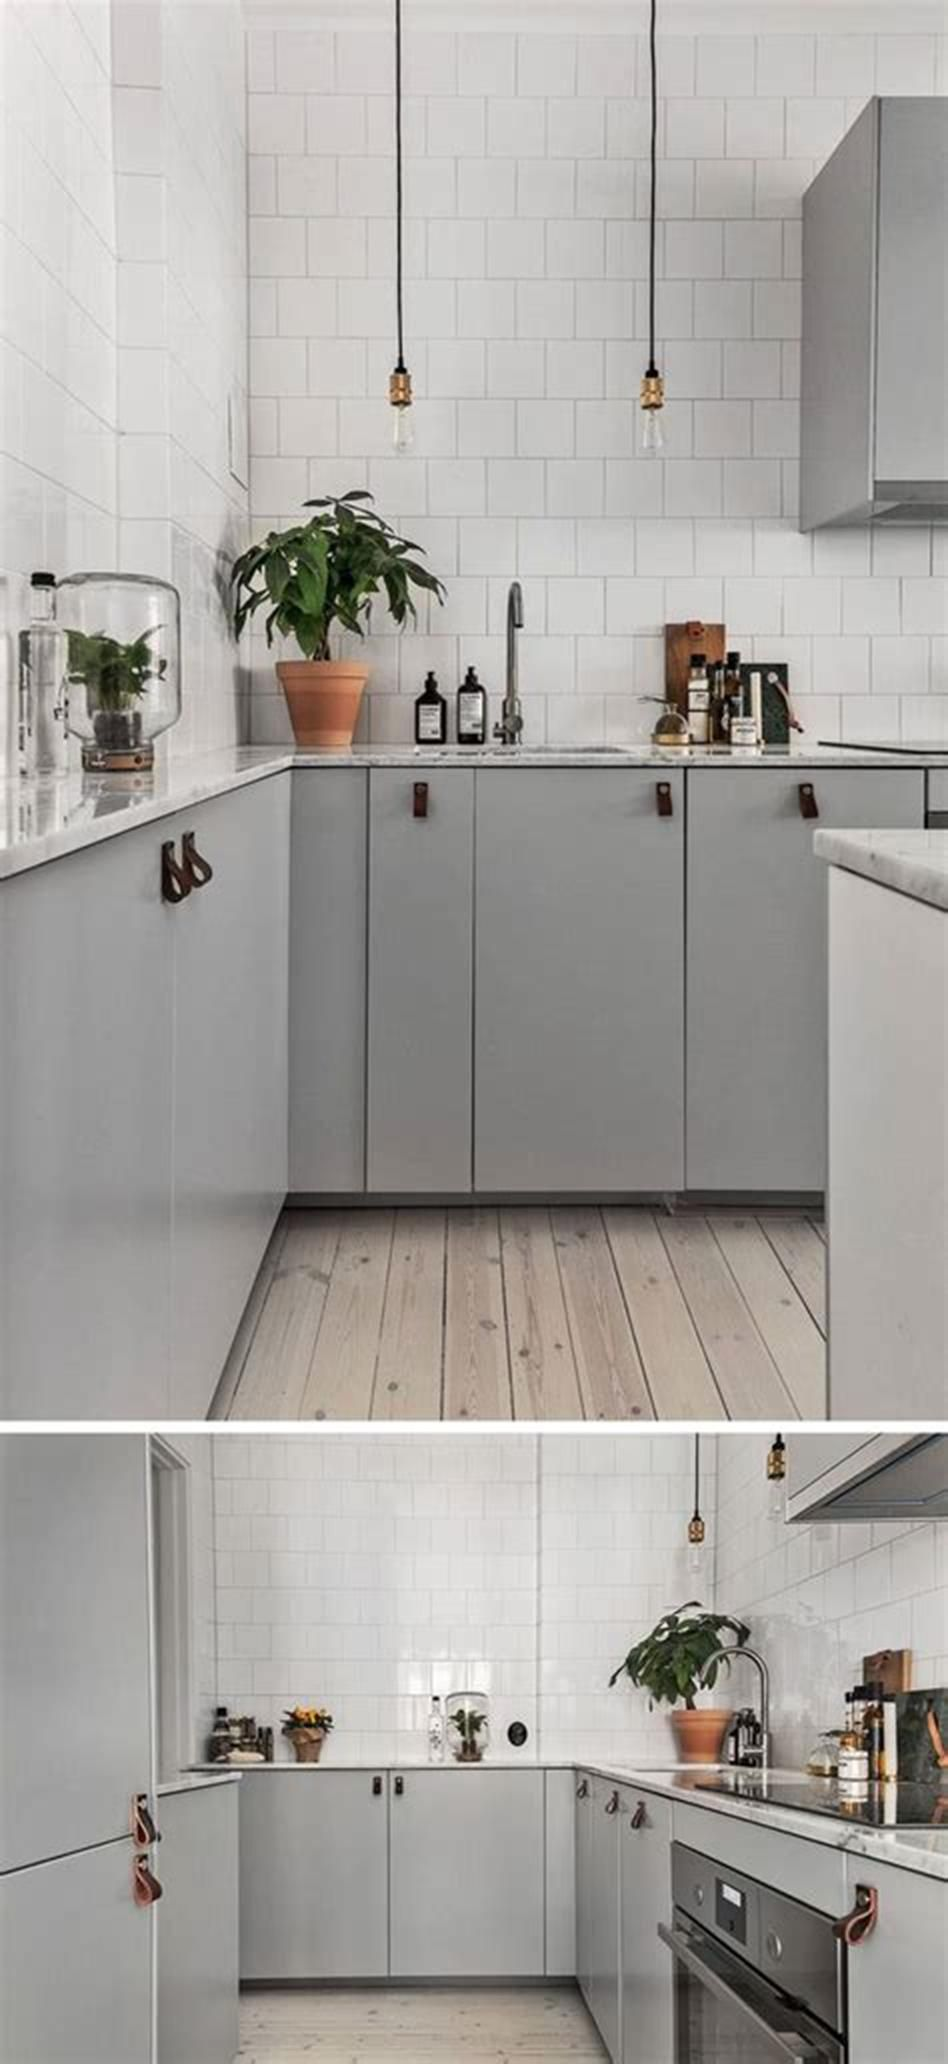 31 Amazing Modern Kitchen Ideas for 2020 You'll Love ...